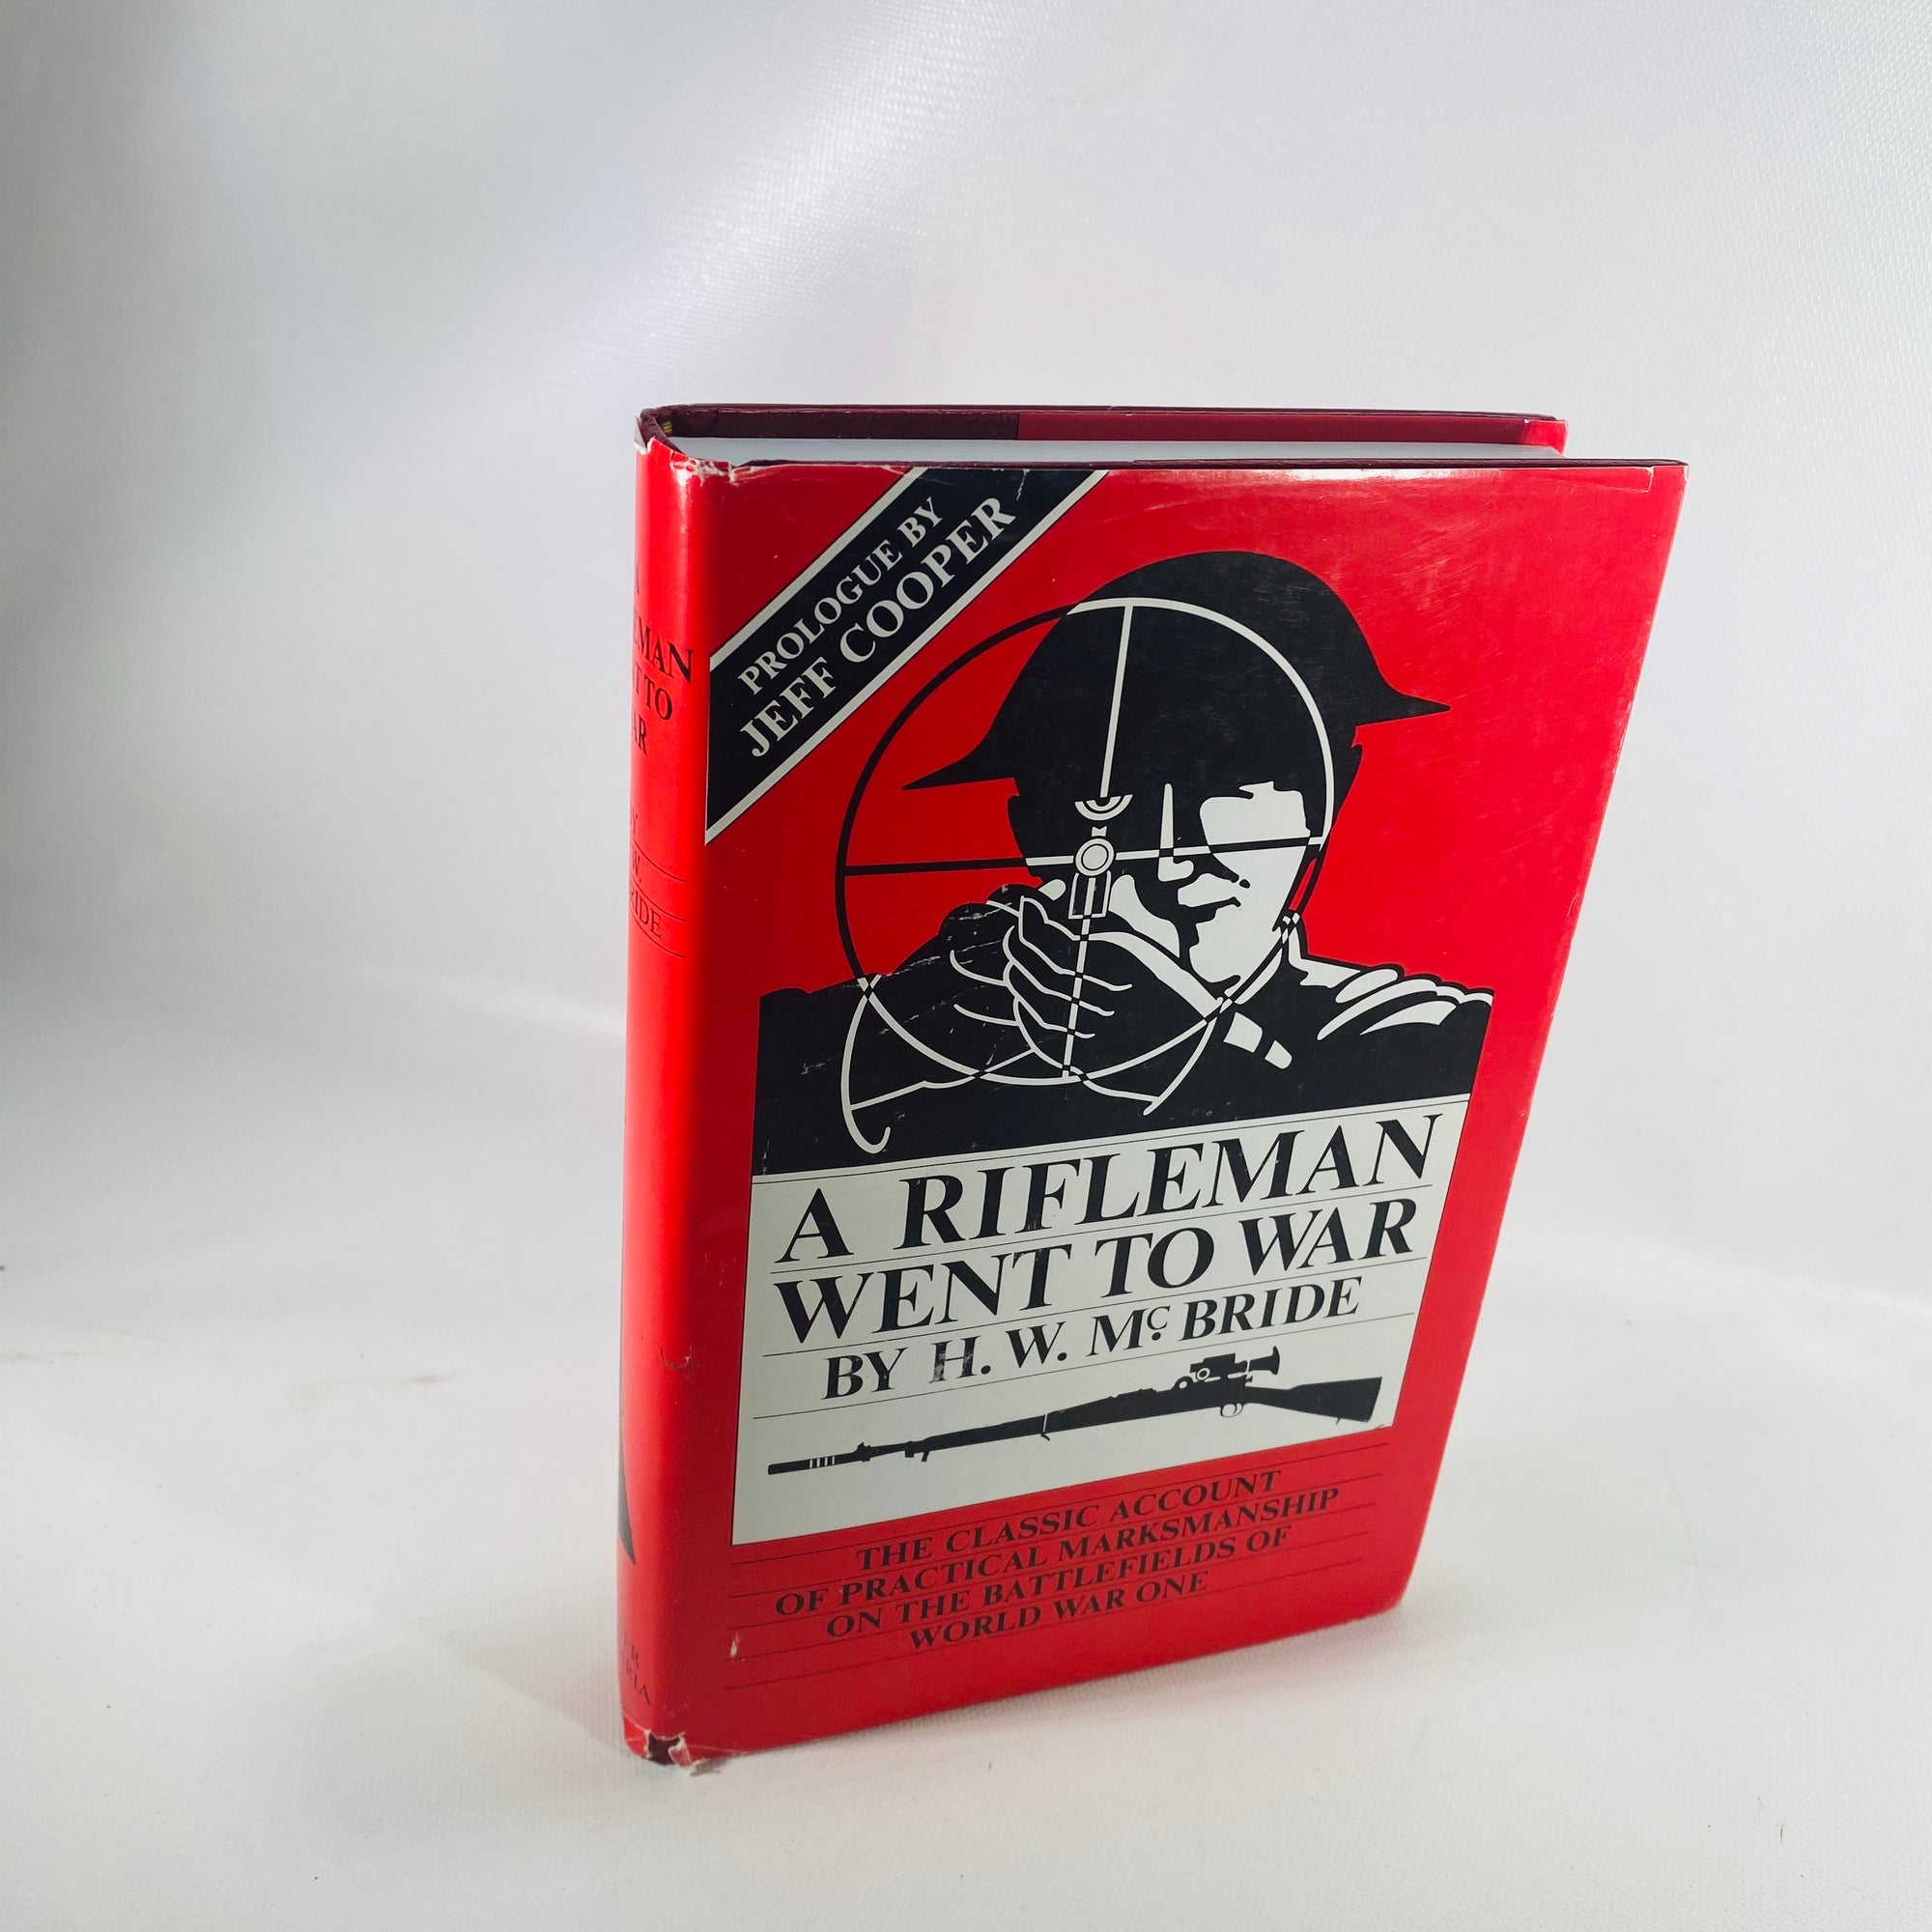 A Rifleman Went to War by H.W. Mc Bride 1987